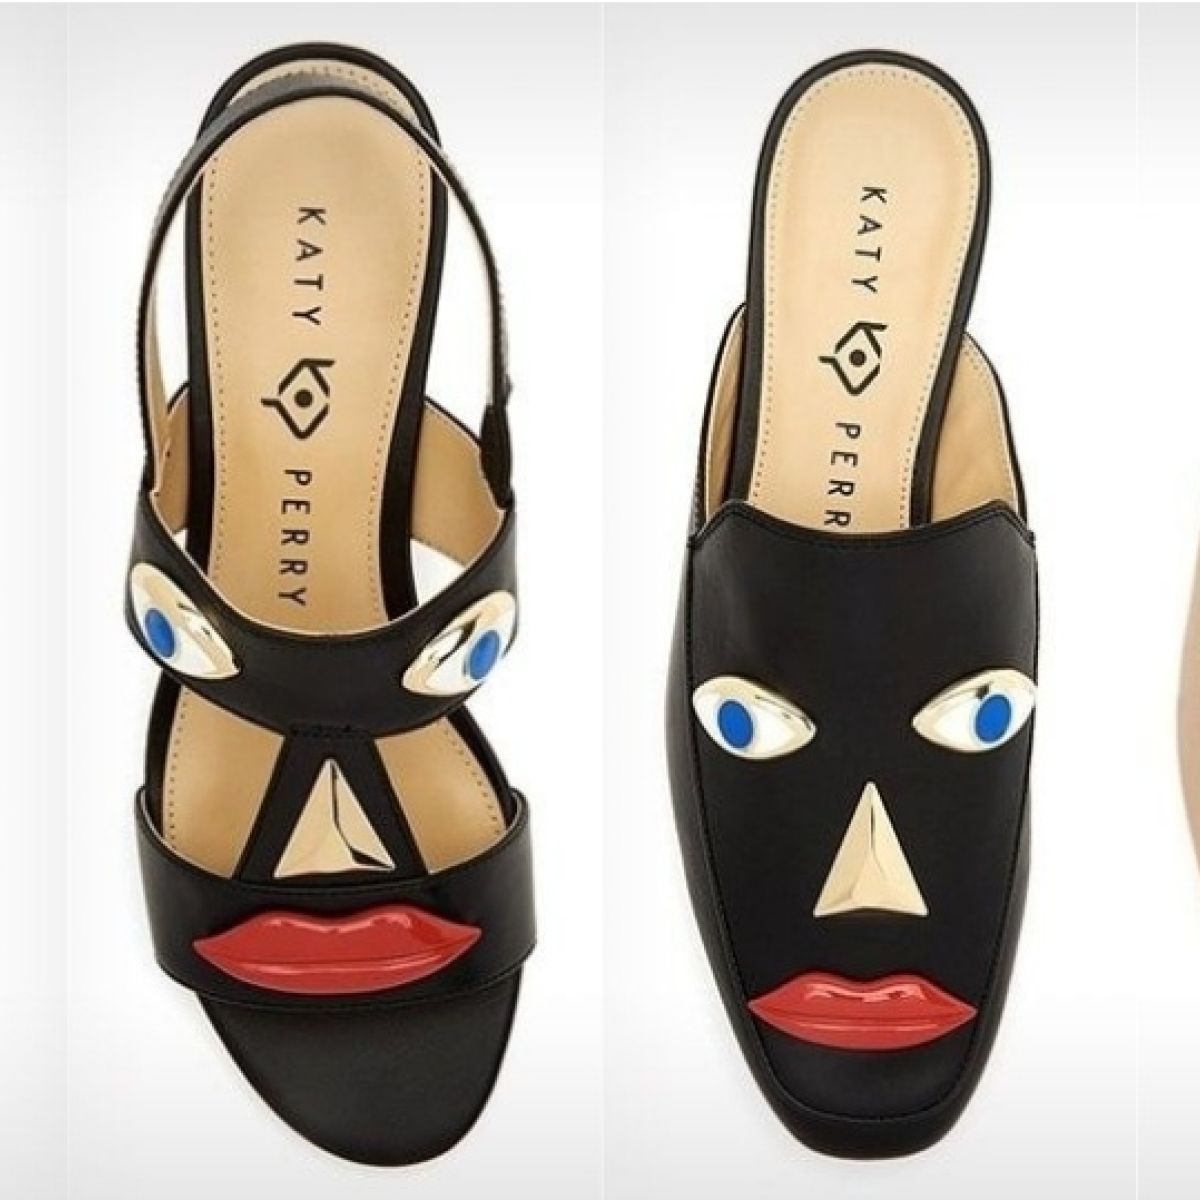 Katy Latest 'blackface' In Perry Pulls Shoes Fashion Controversy Kl1JcF